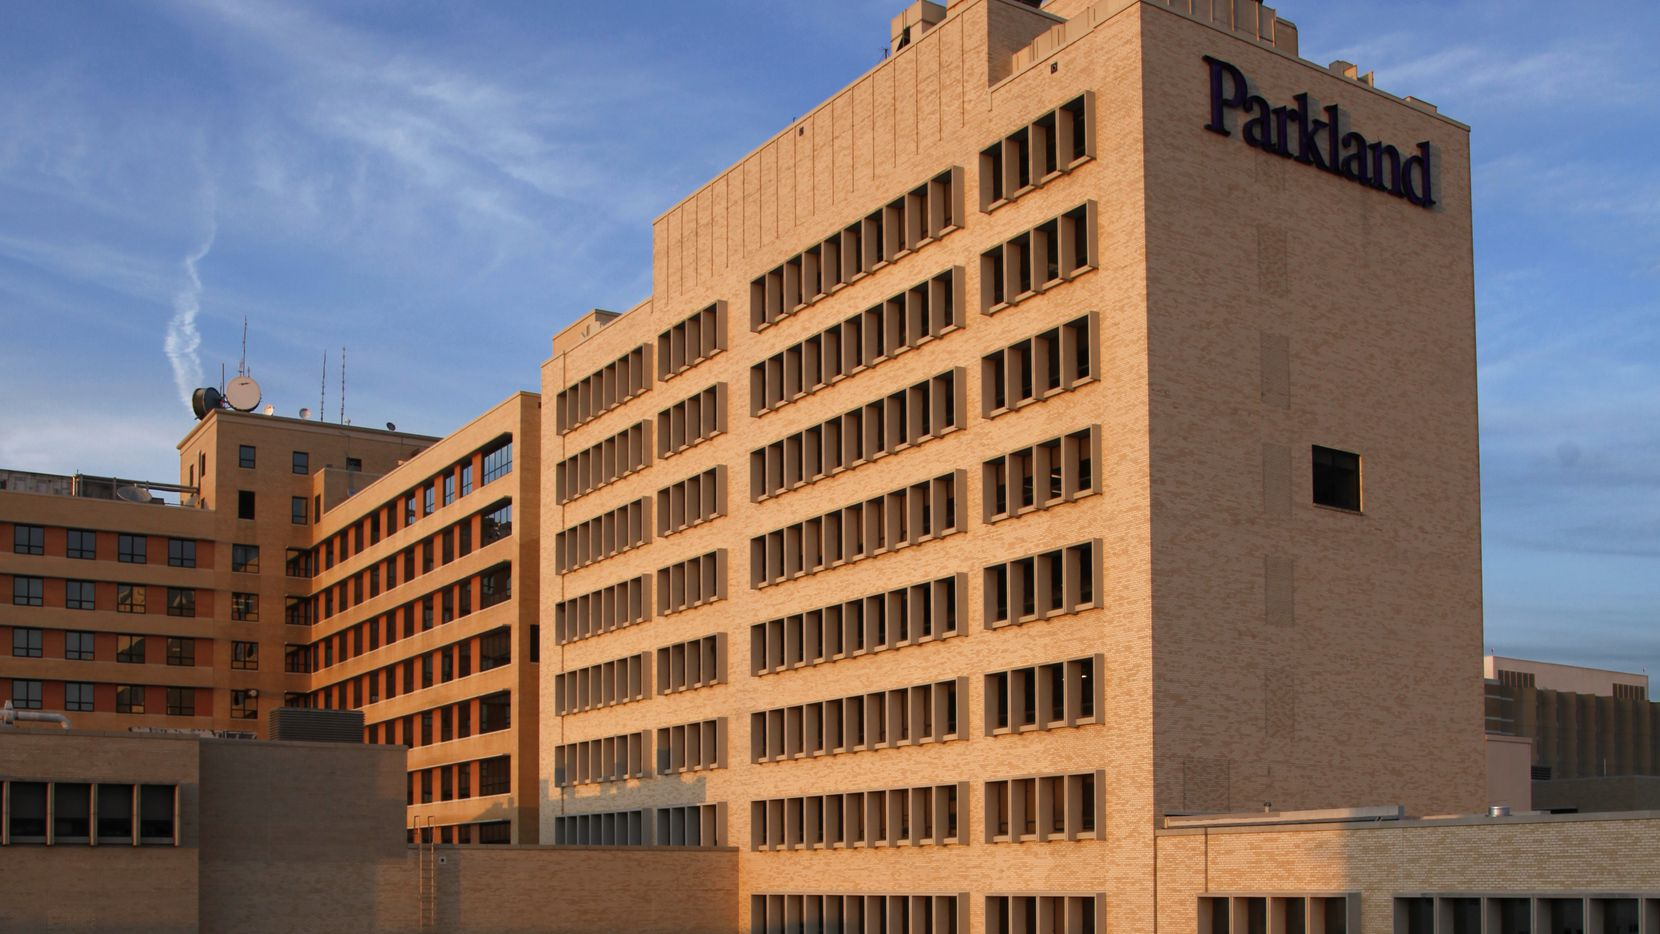 The old Parkland Hospital buildings have been empty for more than a year and are for sale.